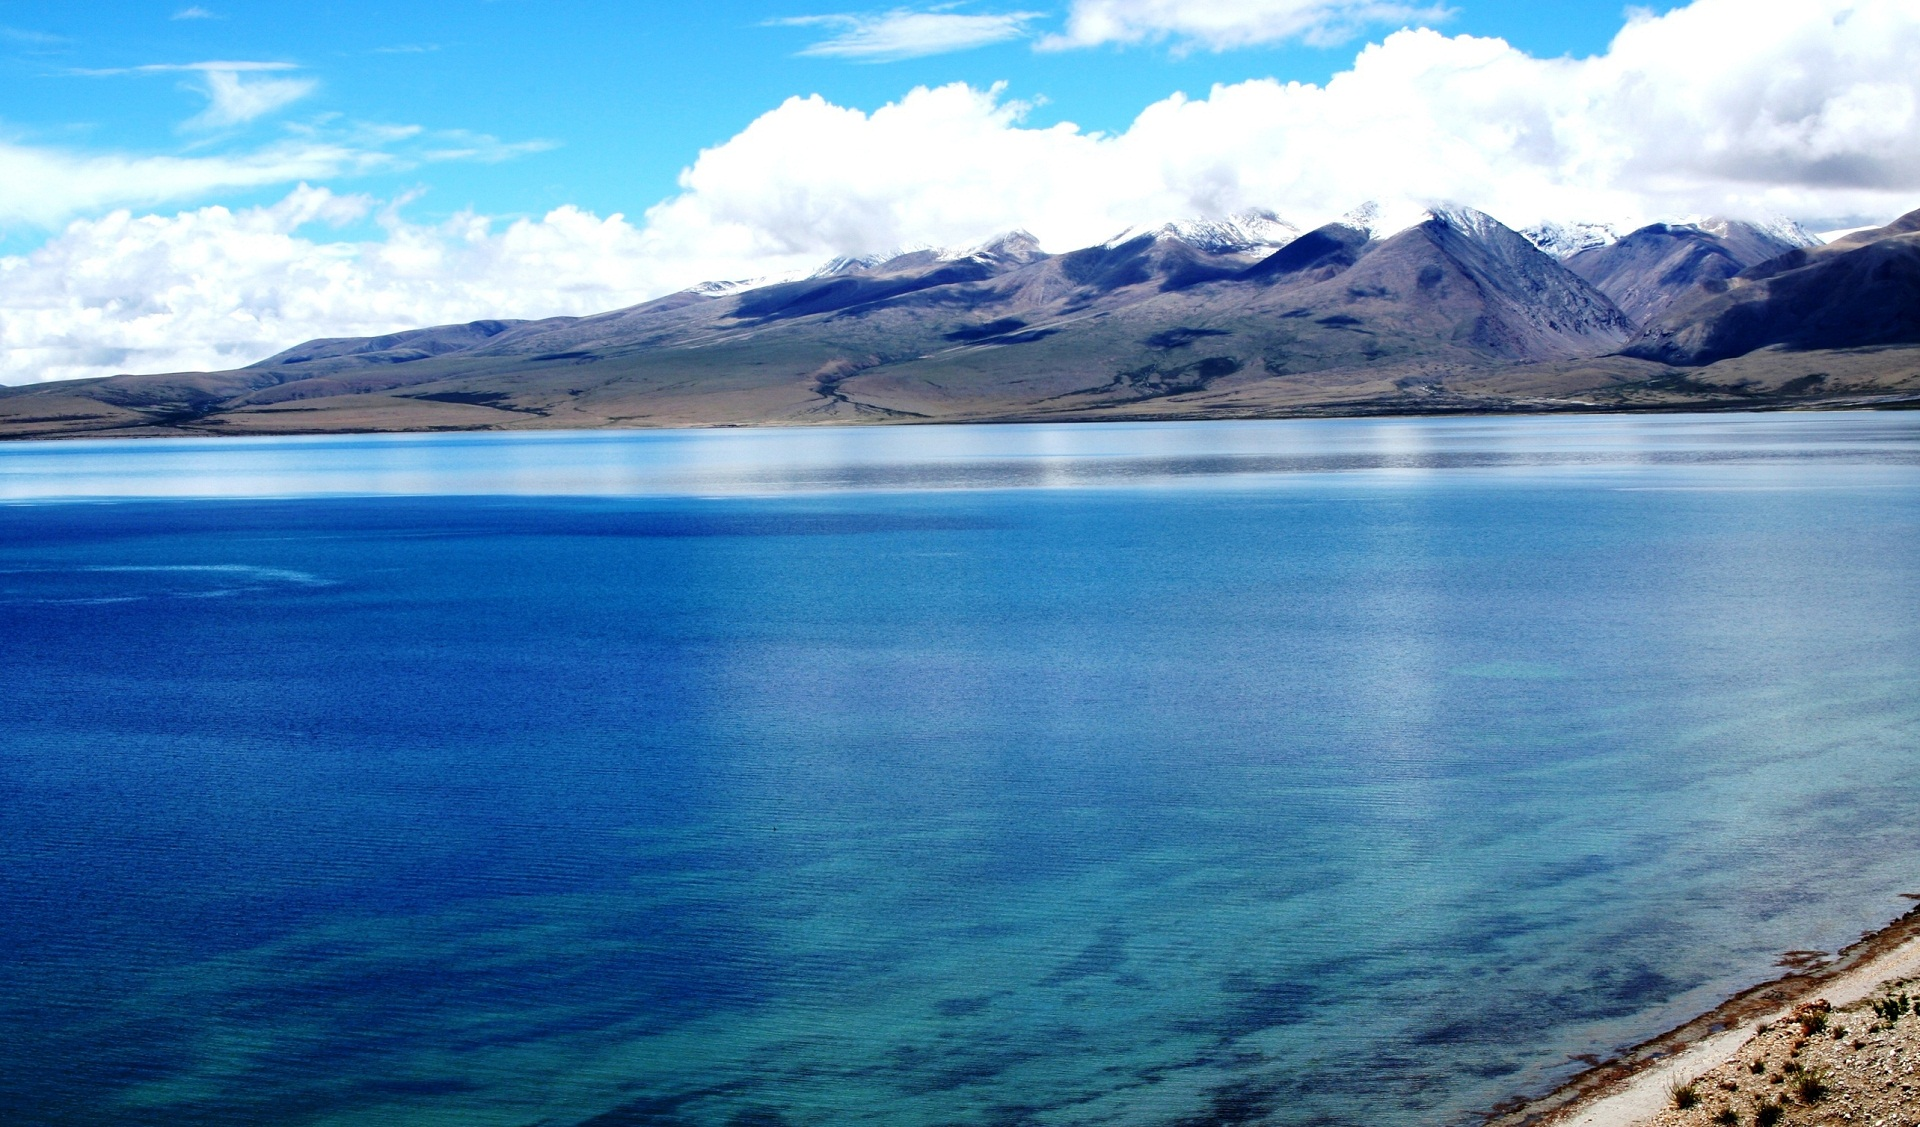 Mount Kailash, Tibet, Lake Manasarovar